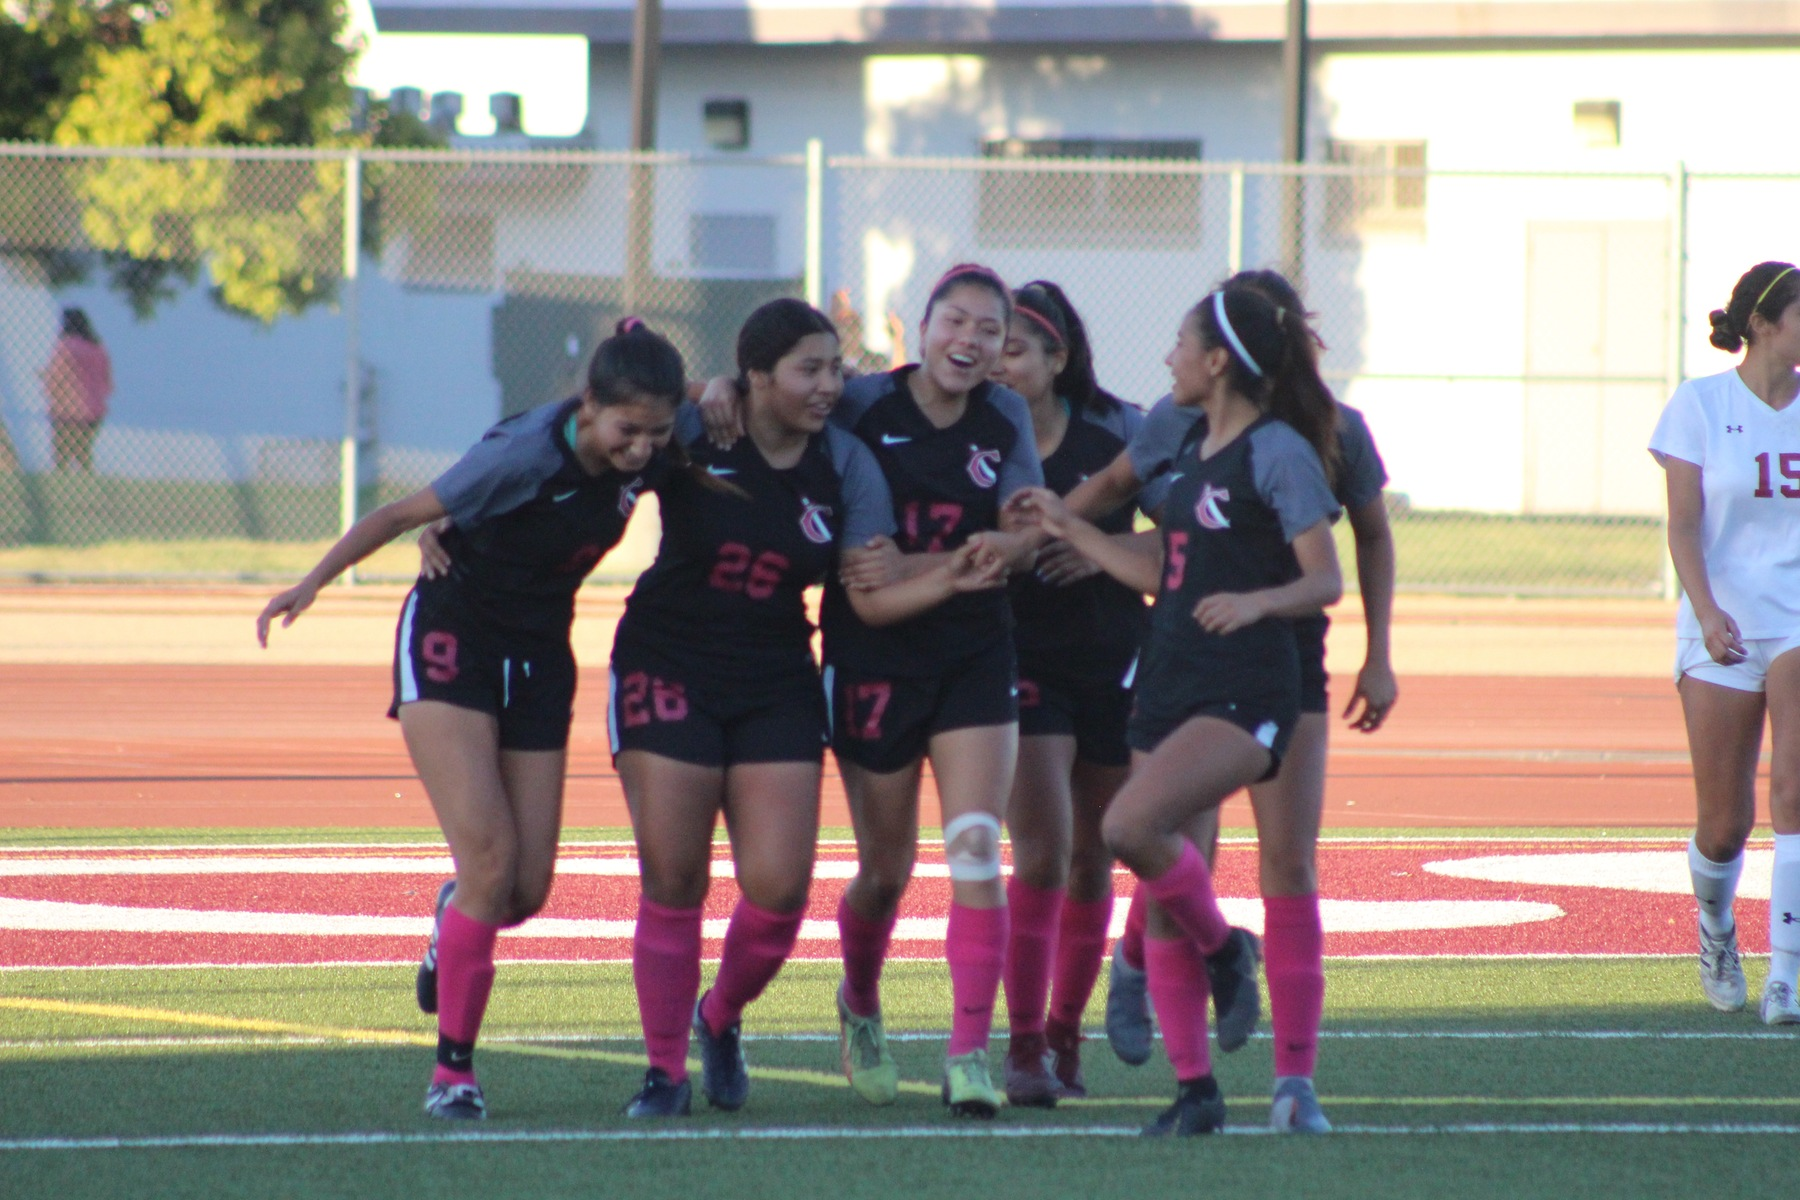 Martinez leads Tartars to Victory in Tartar Futbol for a Cure Game against Pasadena City